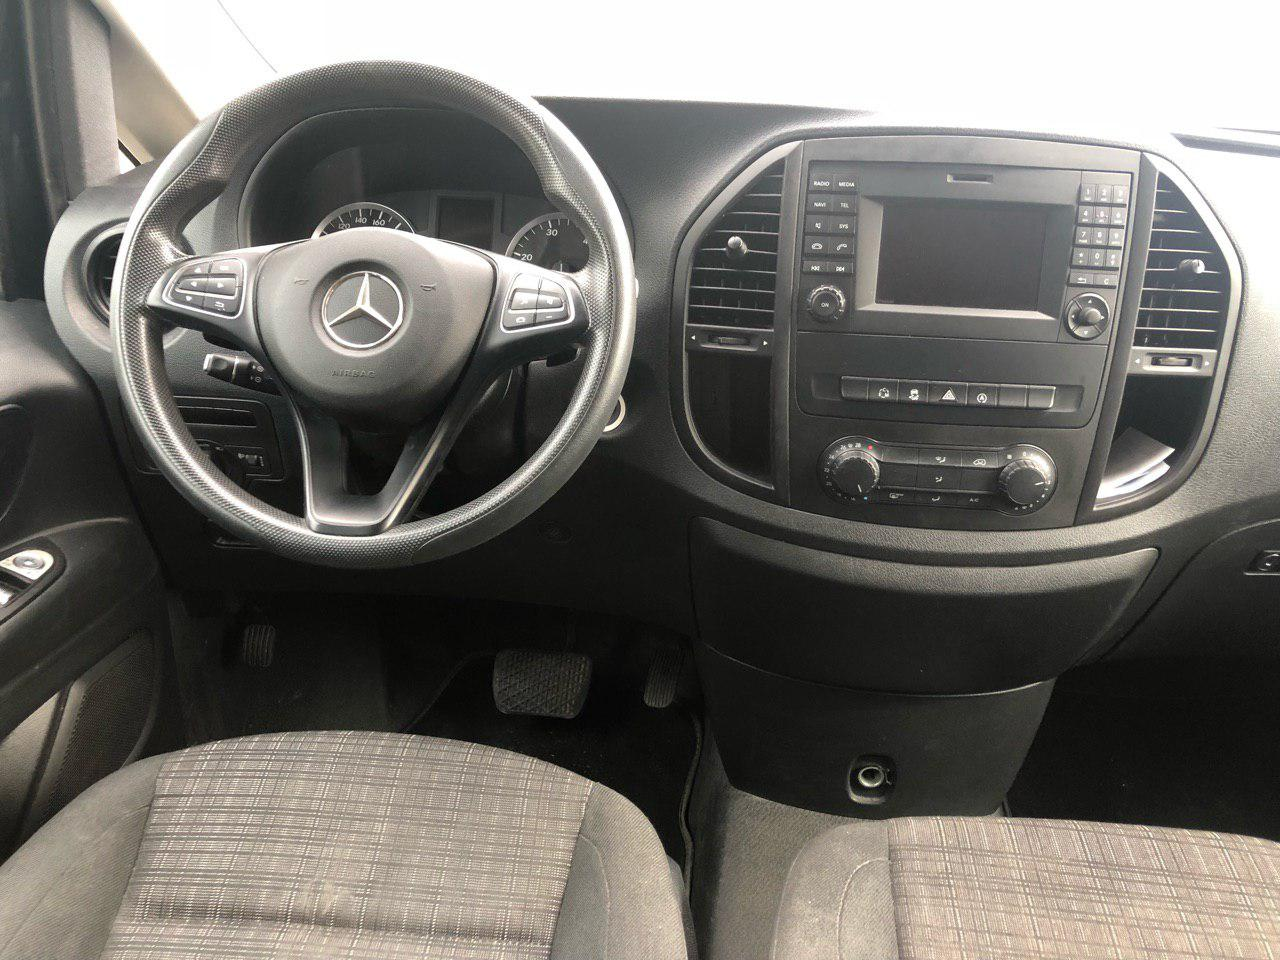 Mercedes Vito long NEW 2016 (1)